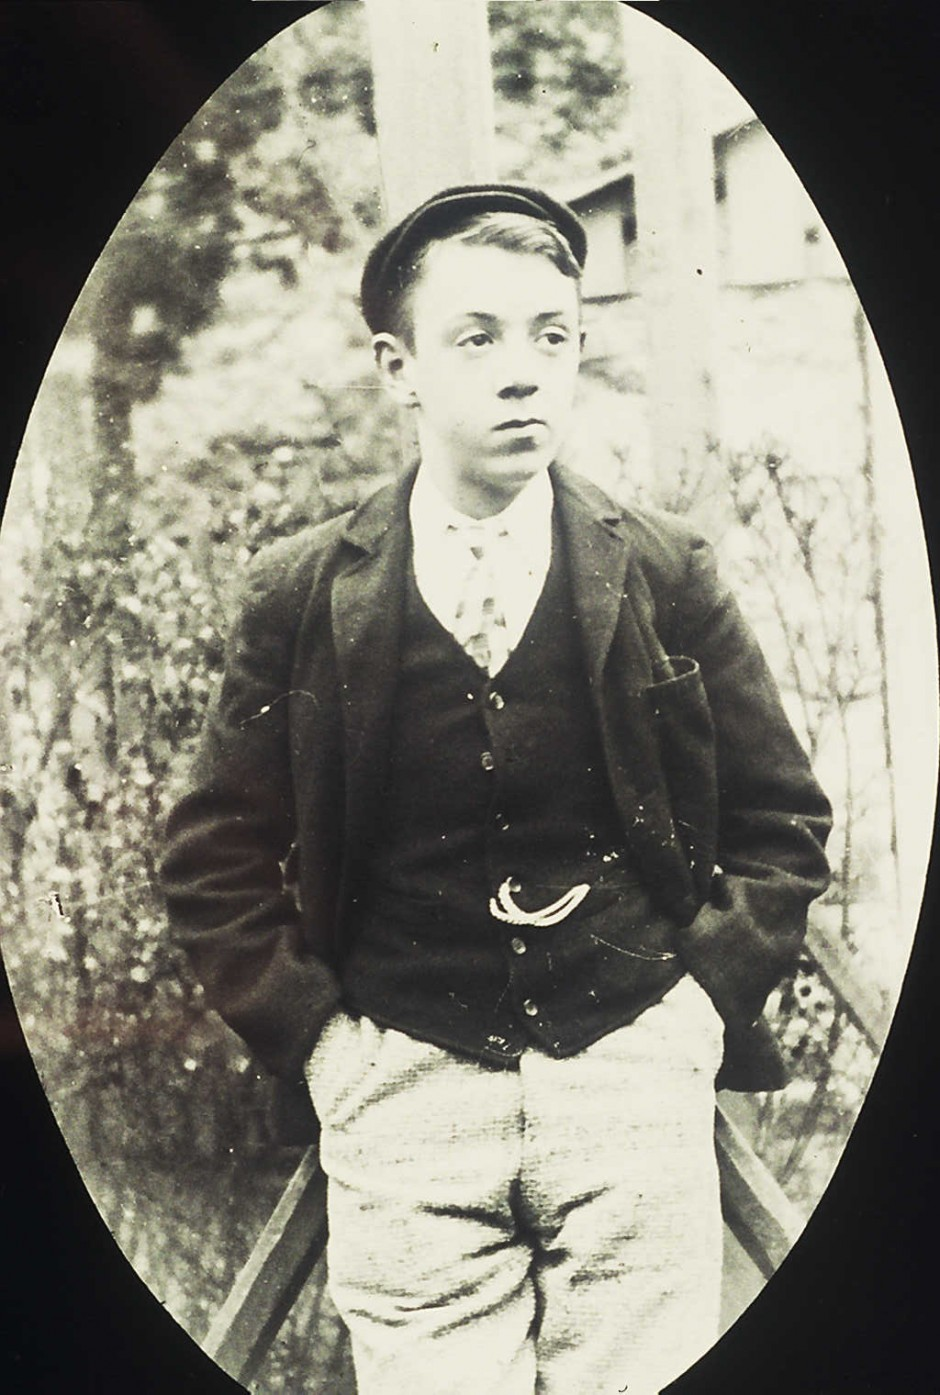 NM-L-19-25 - Lad unknown from Llanymynech